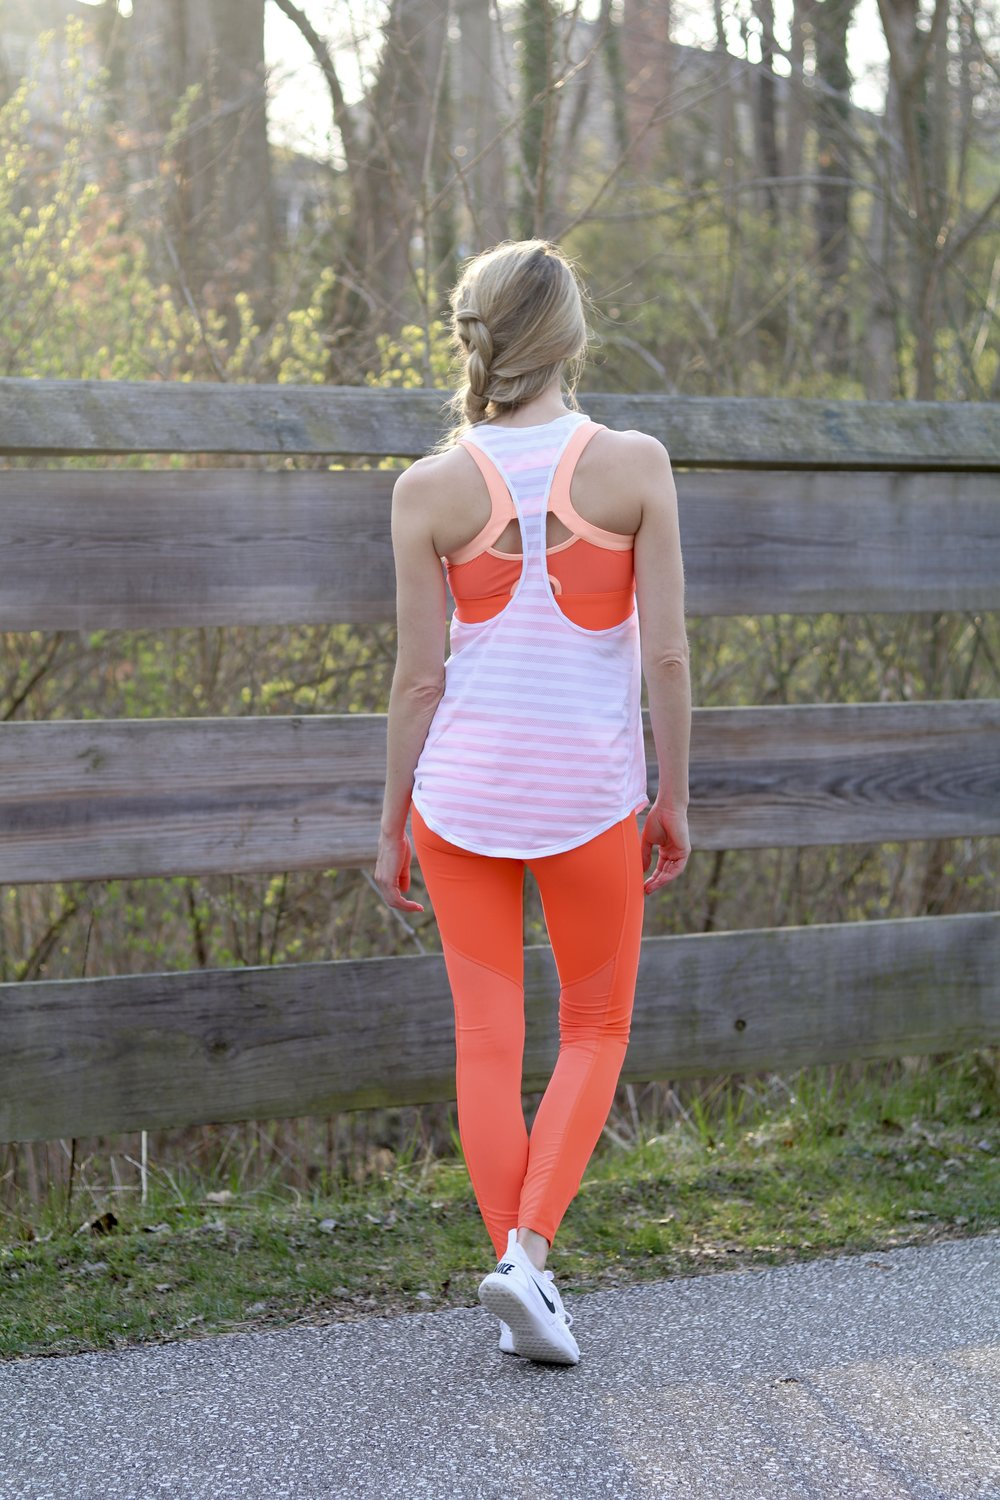 gilt edge | workout look